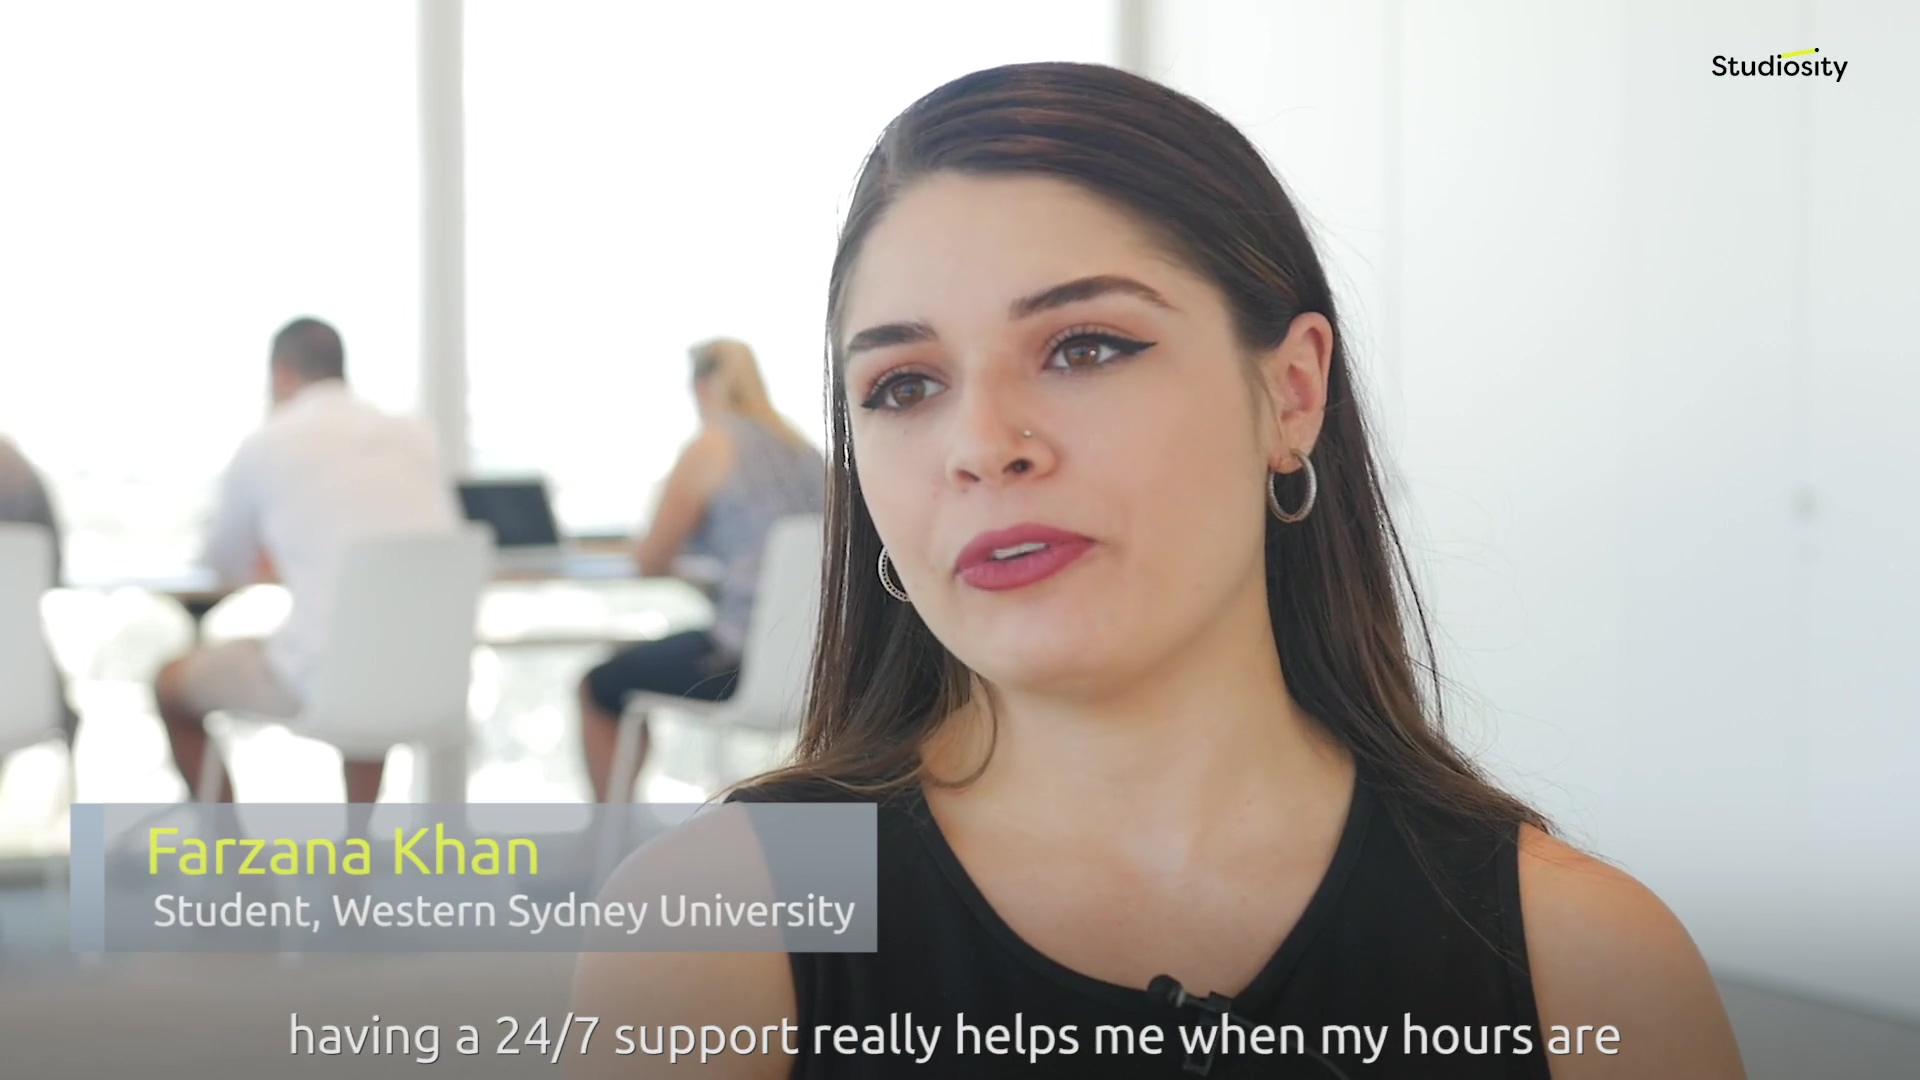 Study help, anywhere, for all students - hear from students and academic leaders